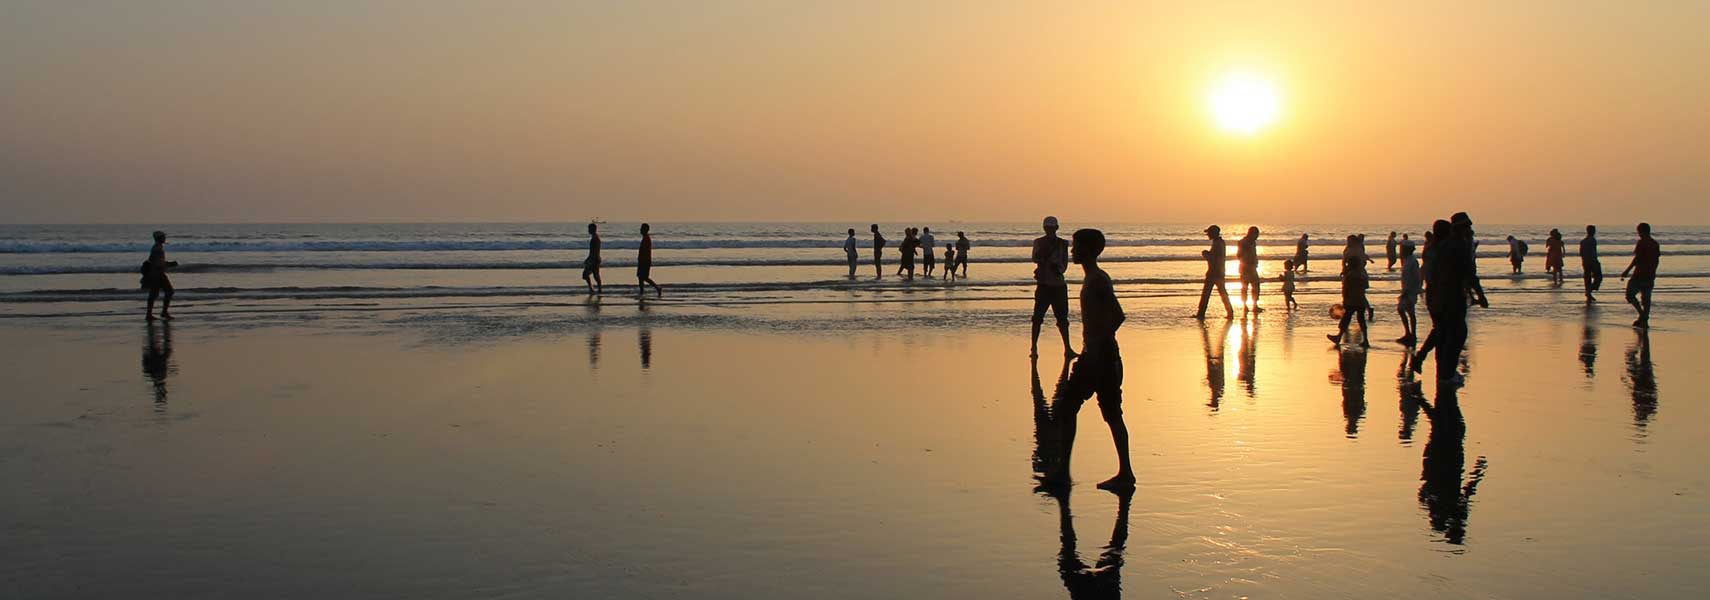 Sunset Cox's Bazar beach, Bangladesh